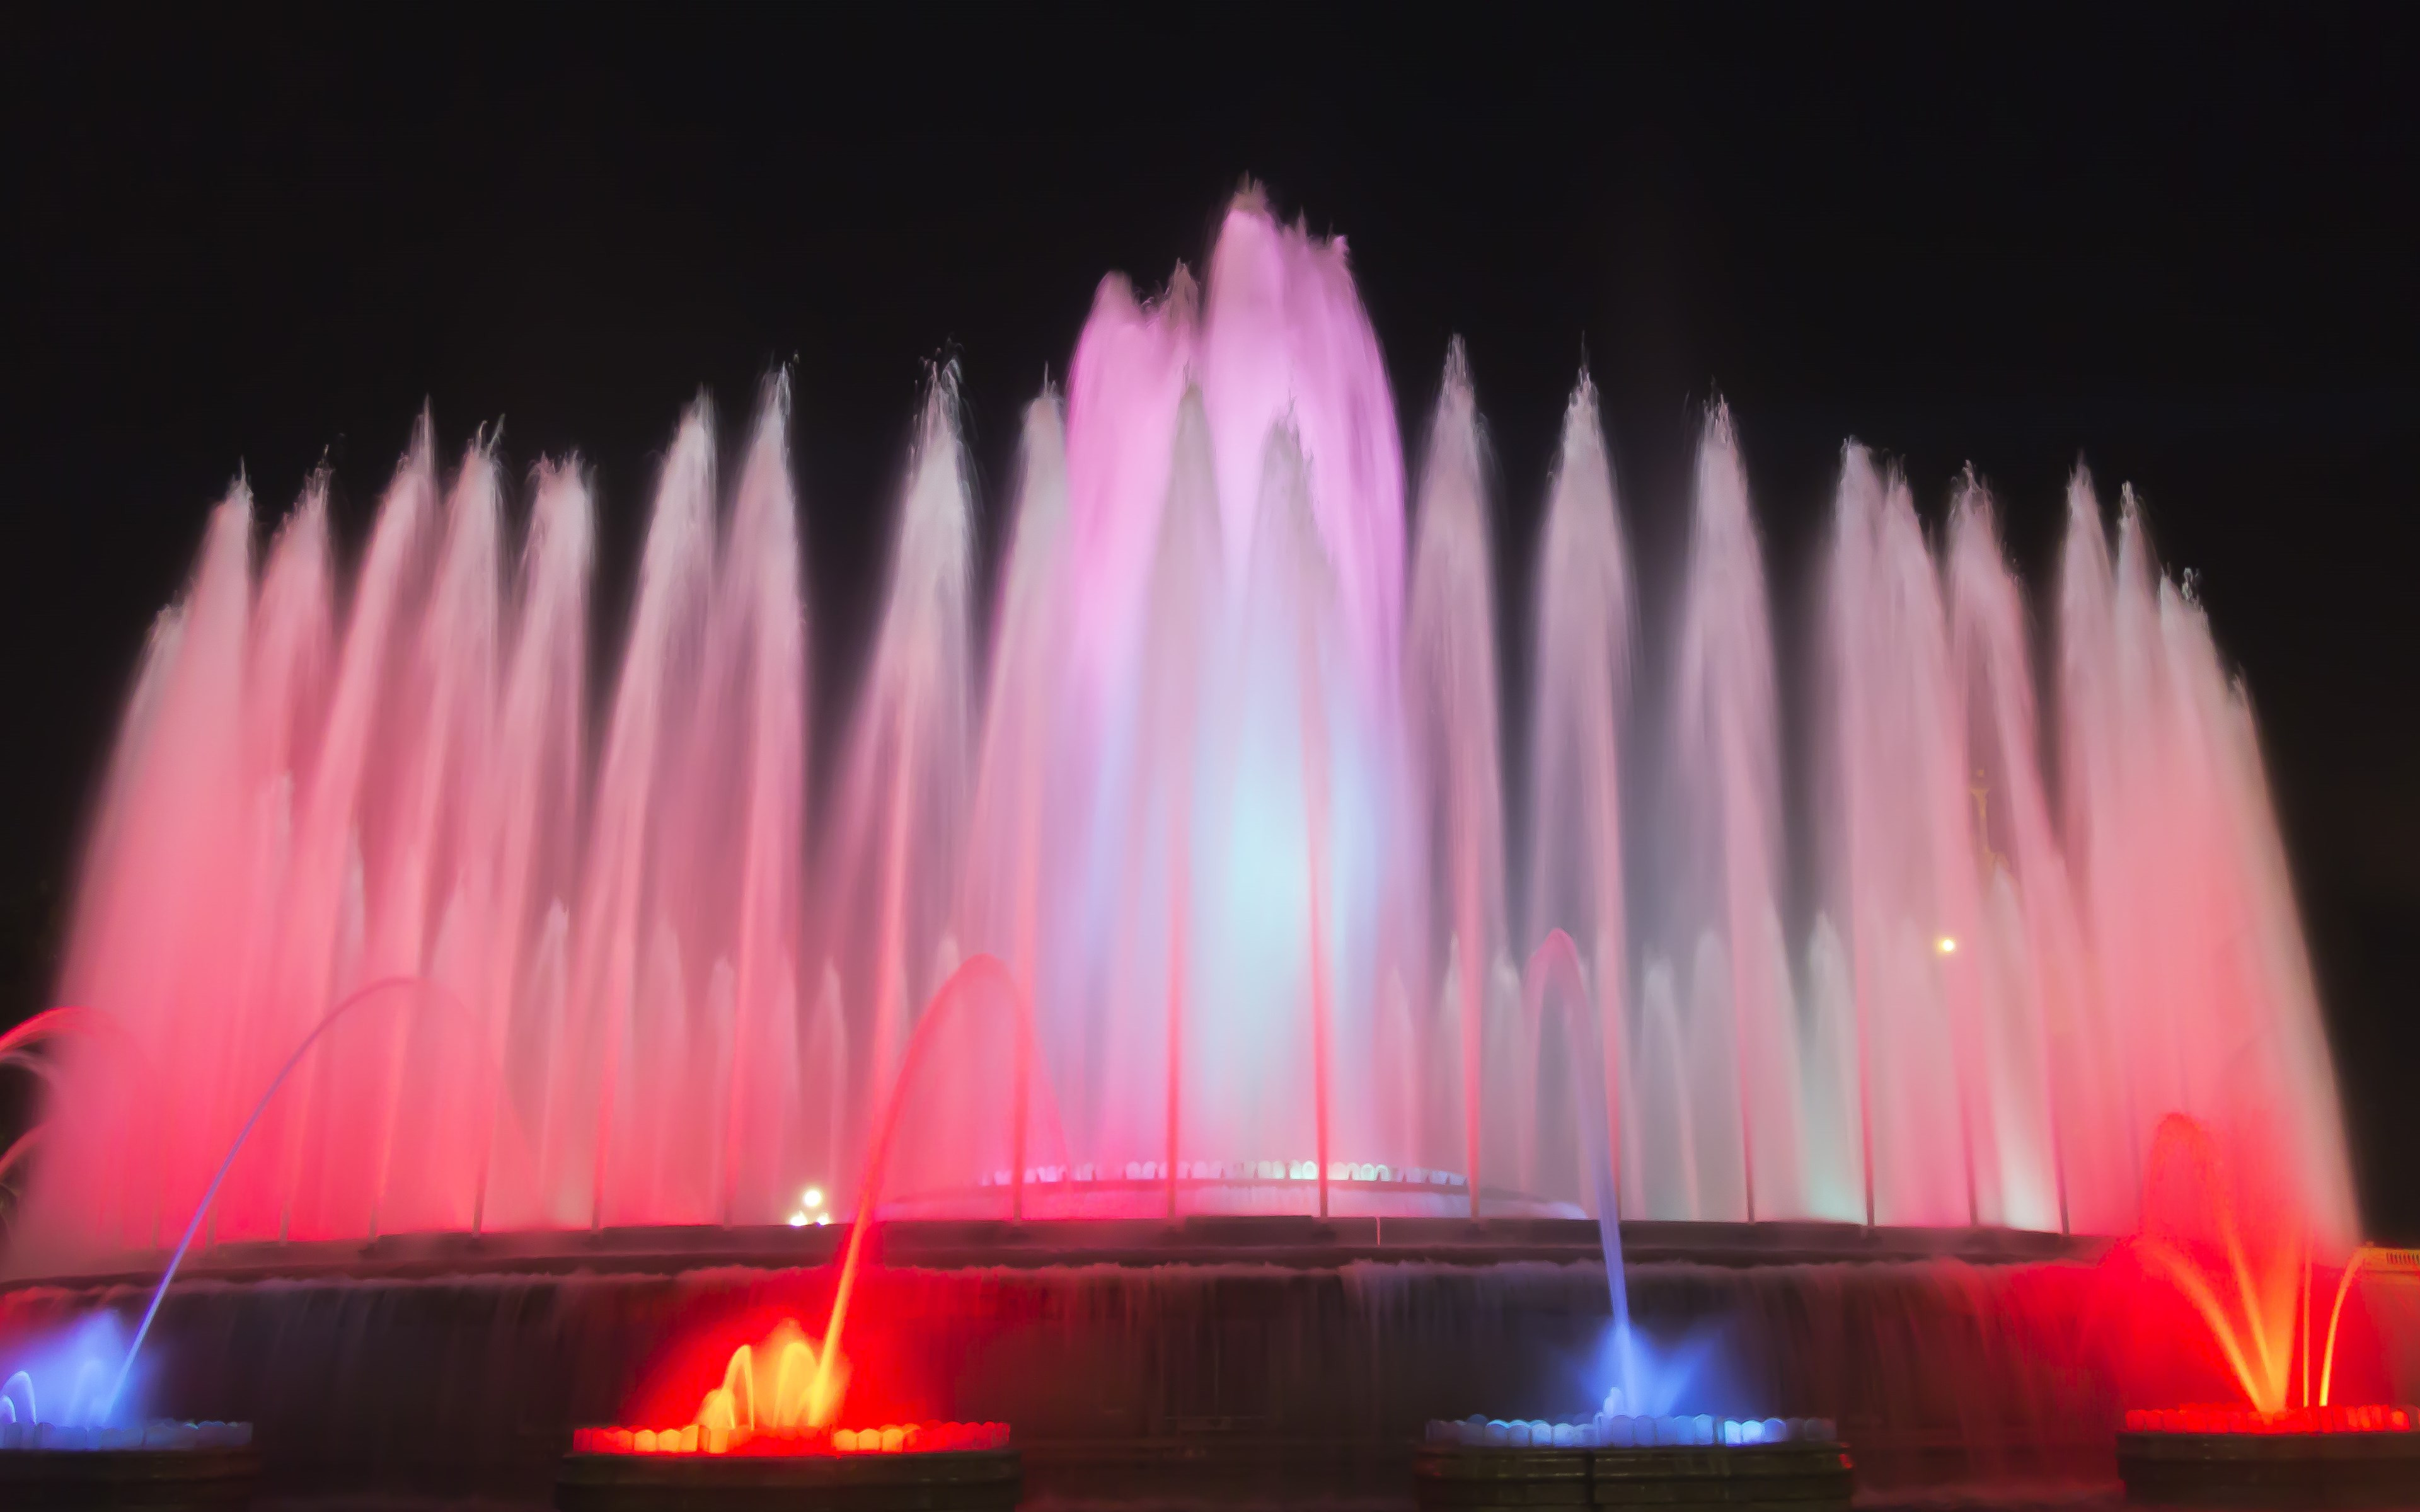 Fountains in Barcelona wallpaper 3840x2400